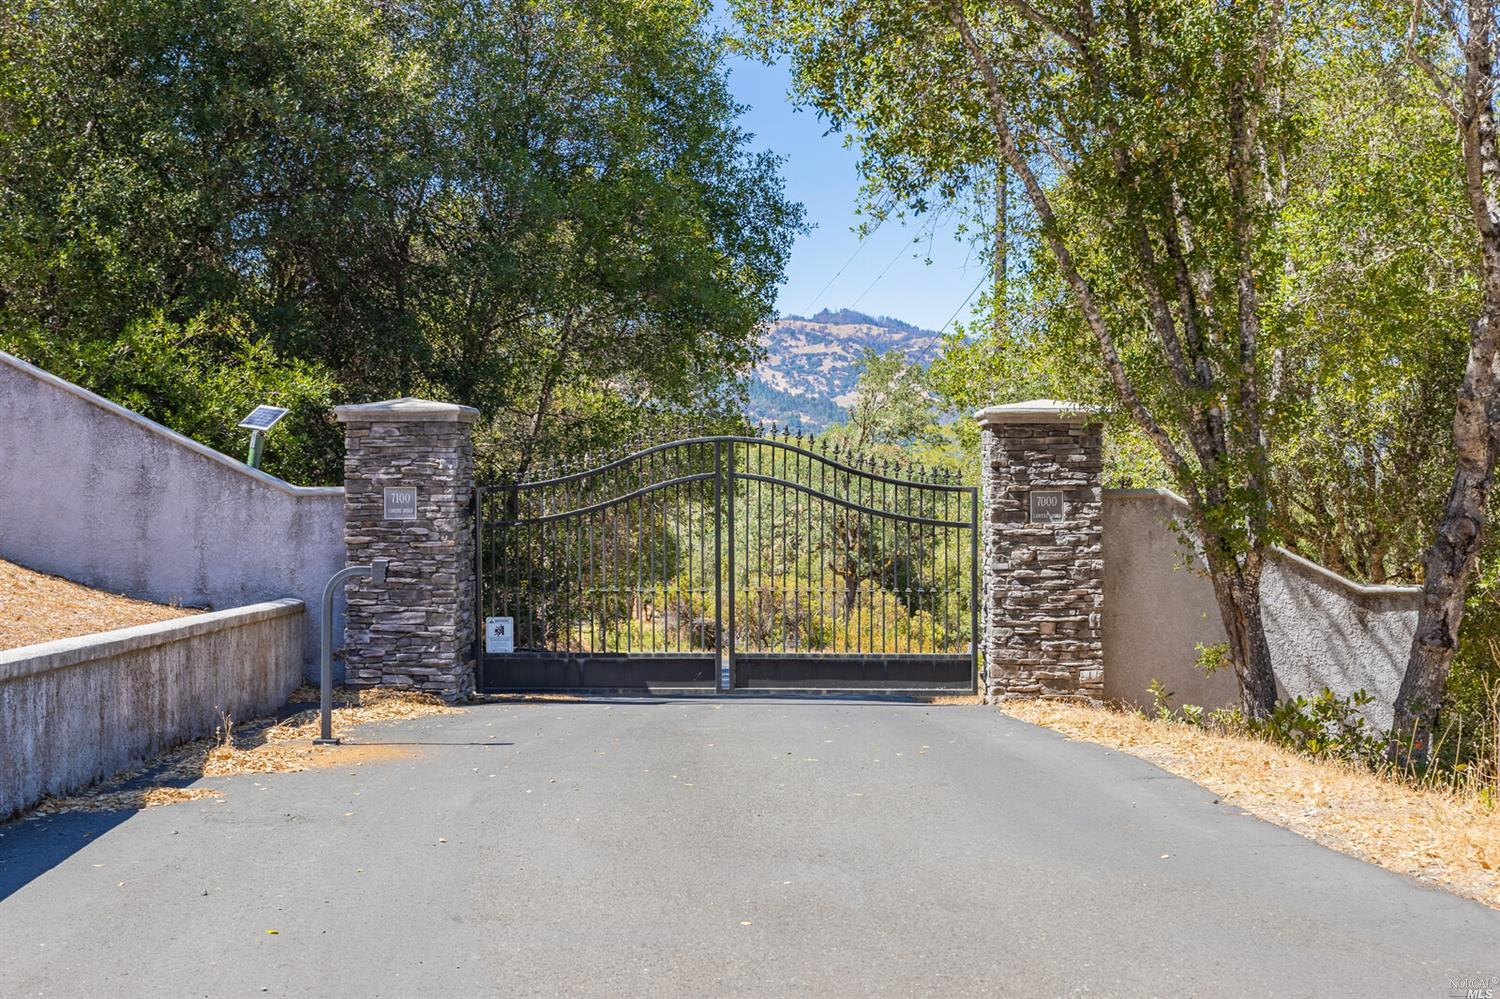 Take advantage of this rare opportunity to own 5 beautiful acres situated up a private, paved road in an area of million dollar homes just 10 minutes North of Ukiah and only 2 hours from San Francisco.  Features include Build-to-suit option(restrictions apply), views of hills and valley, dual fire protection zone, secondary emergency road access, septic installed, power and phone on property, potential for natural gas and excellent south-facing sun exposure, ideal for solar living.  Begin your journey to peaceful wine country lifestyle today!